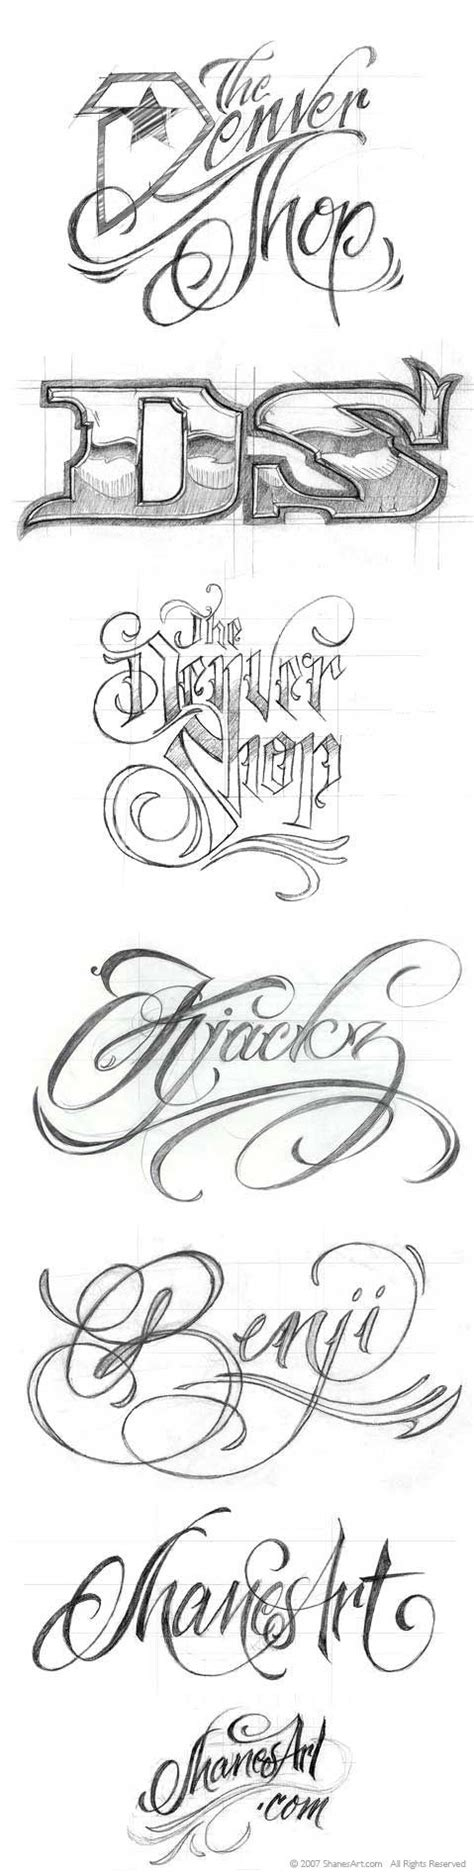 rare tattoo fonts tattoo lettering 10 by elynaamadeus tattoo lettering fonts sv83 187 regardsdefemmes